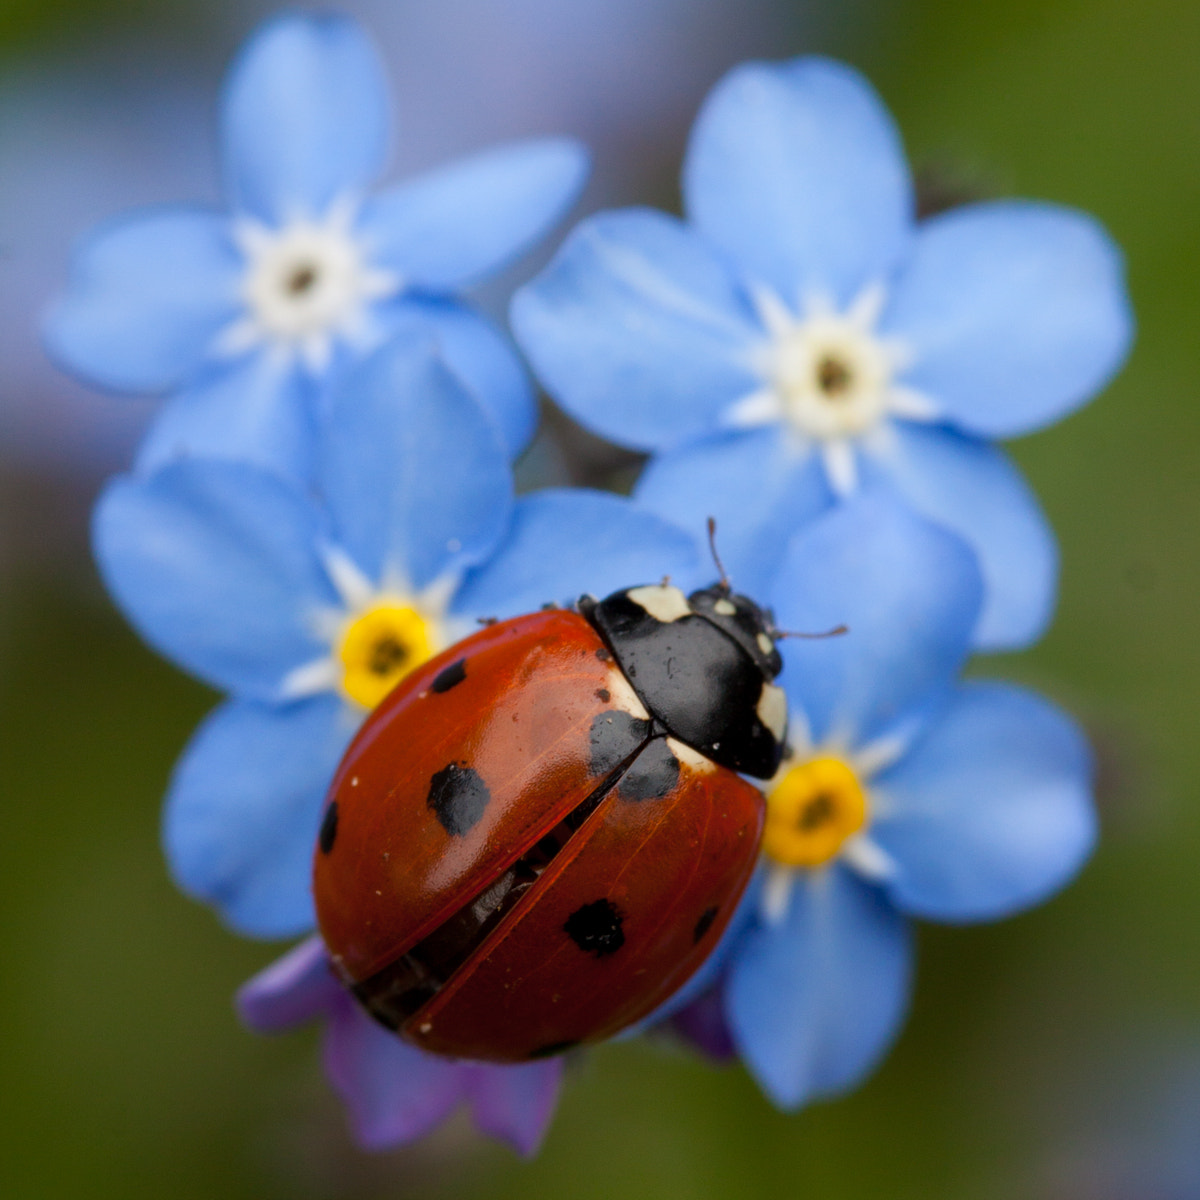 Photograph Spring Ladybug by Ada Zyborowicz on 500px